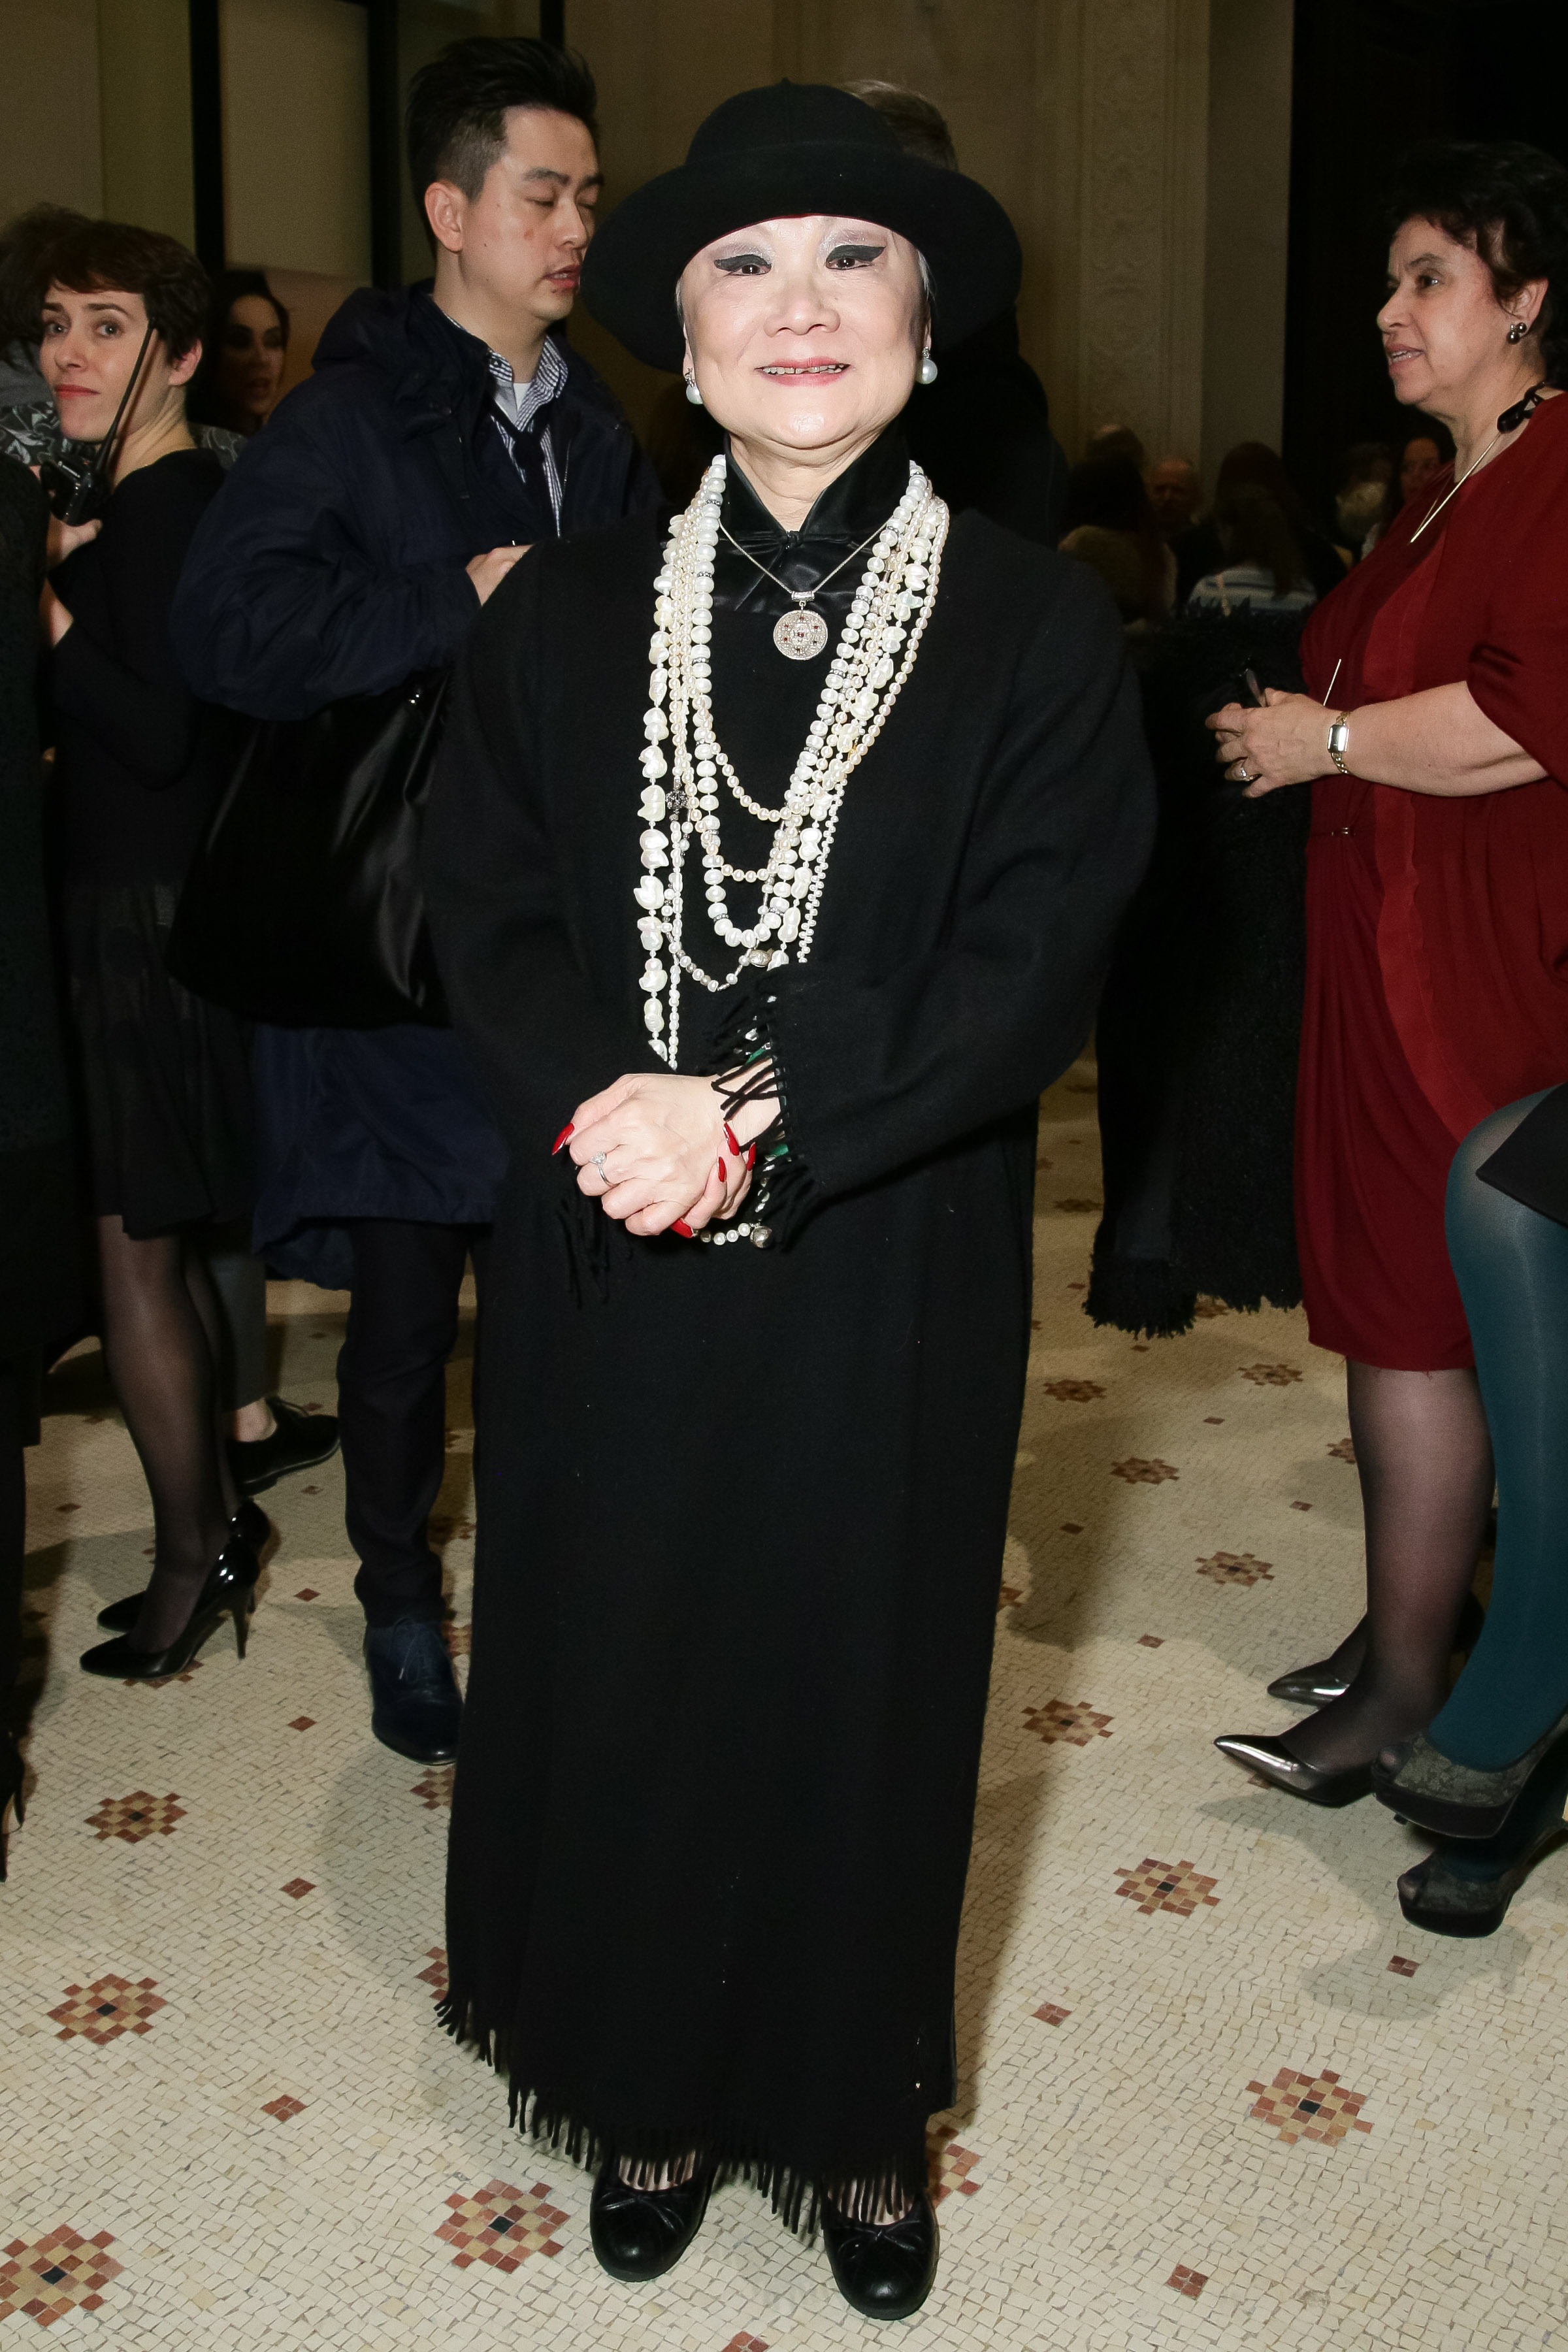 Madame Shaw-Lan WangJeanne Lanvin Retrospective, Autumn Winter 2015-2016, Paris Fashion Week, Paris, France - 06 Mar 2015